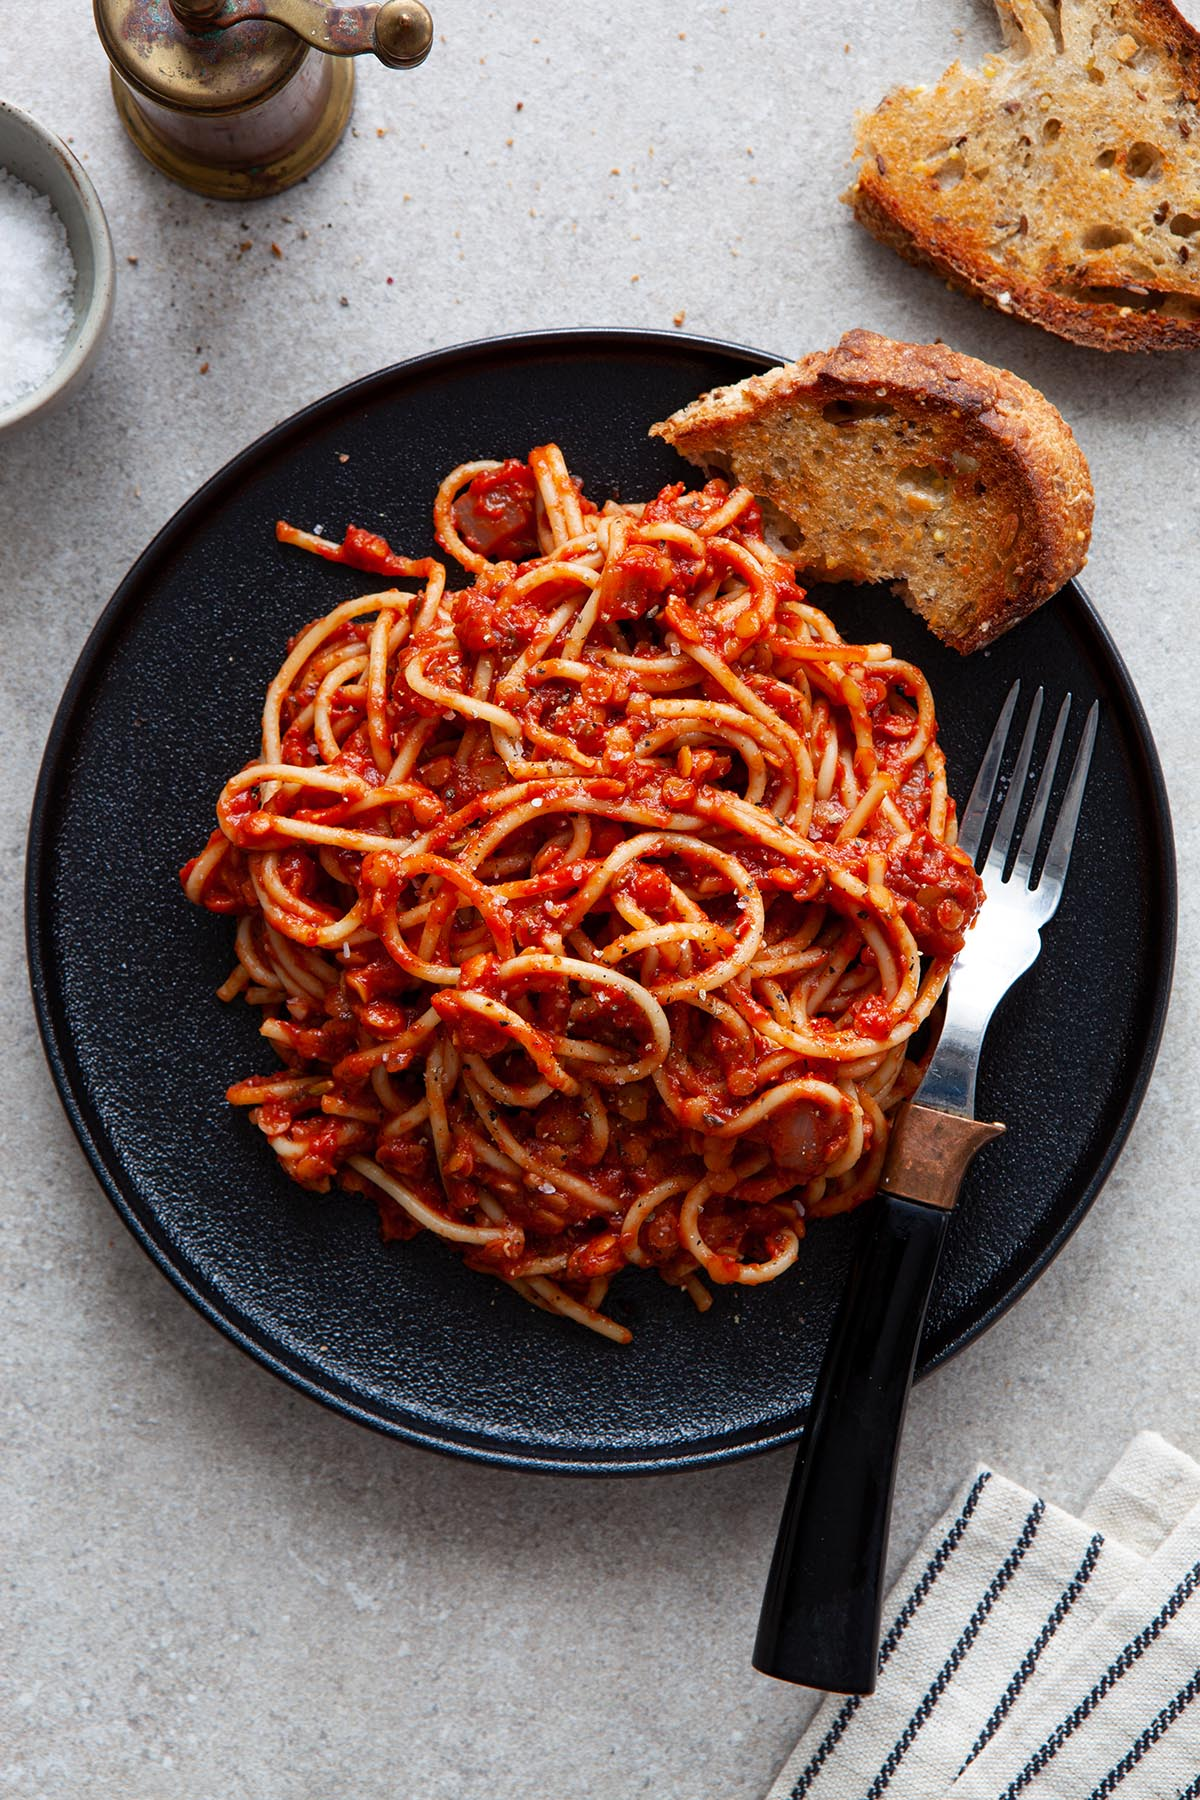 A plate of spaghetti tossed with vegan lentil Bolognese sauce.